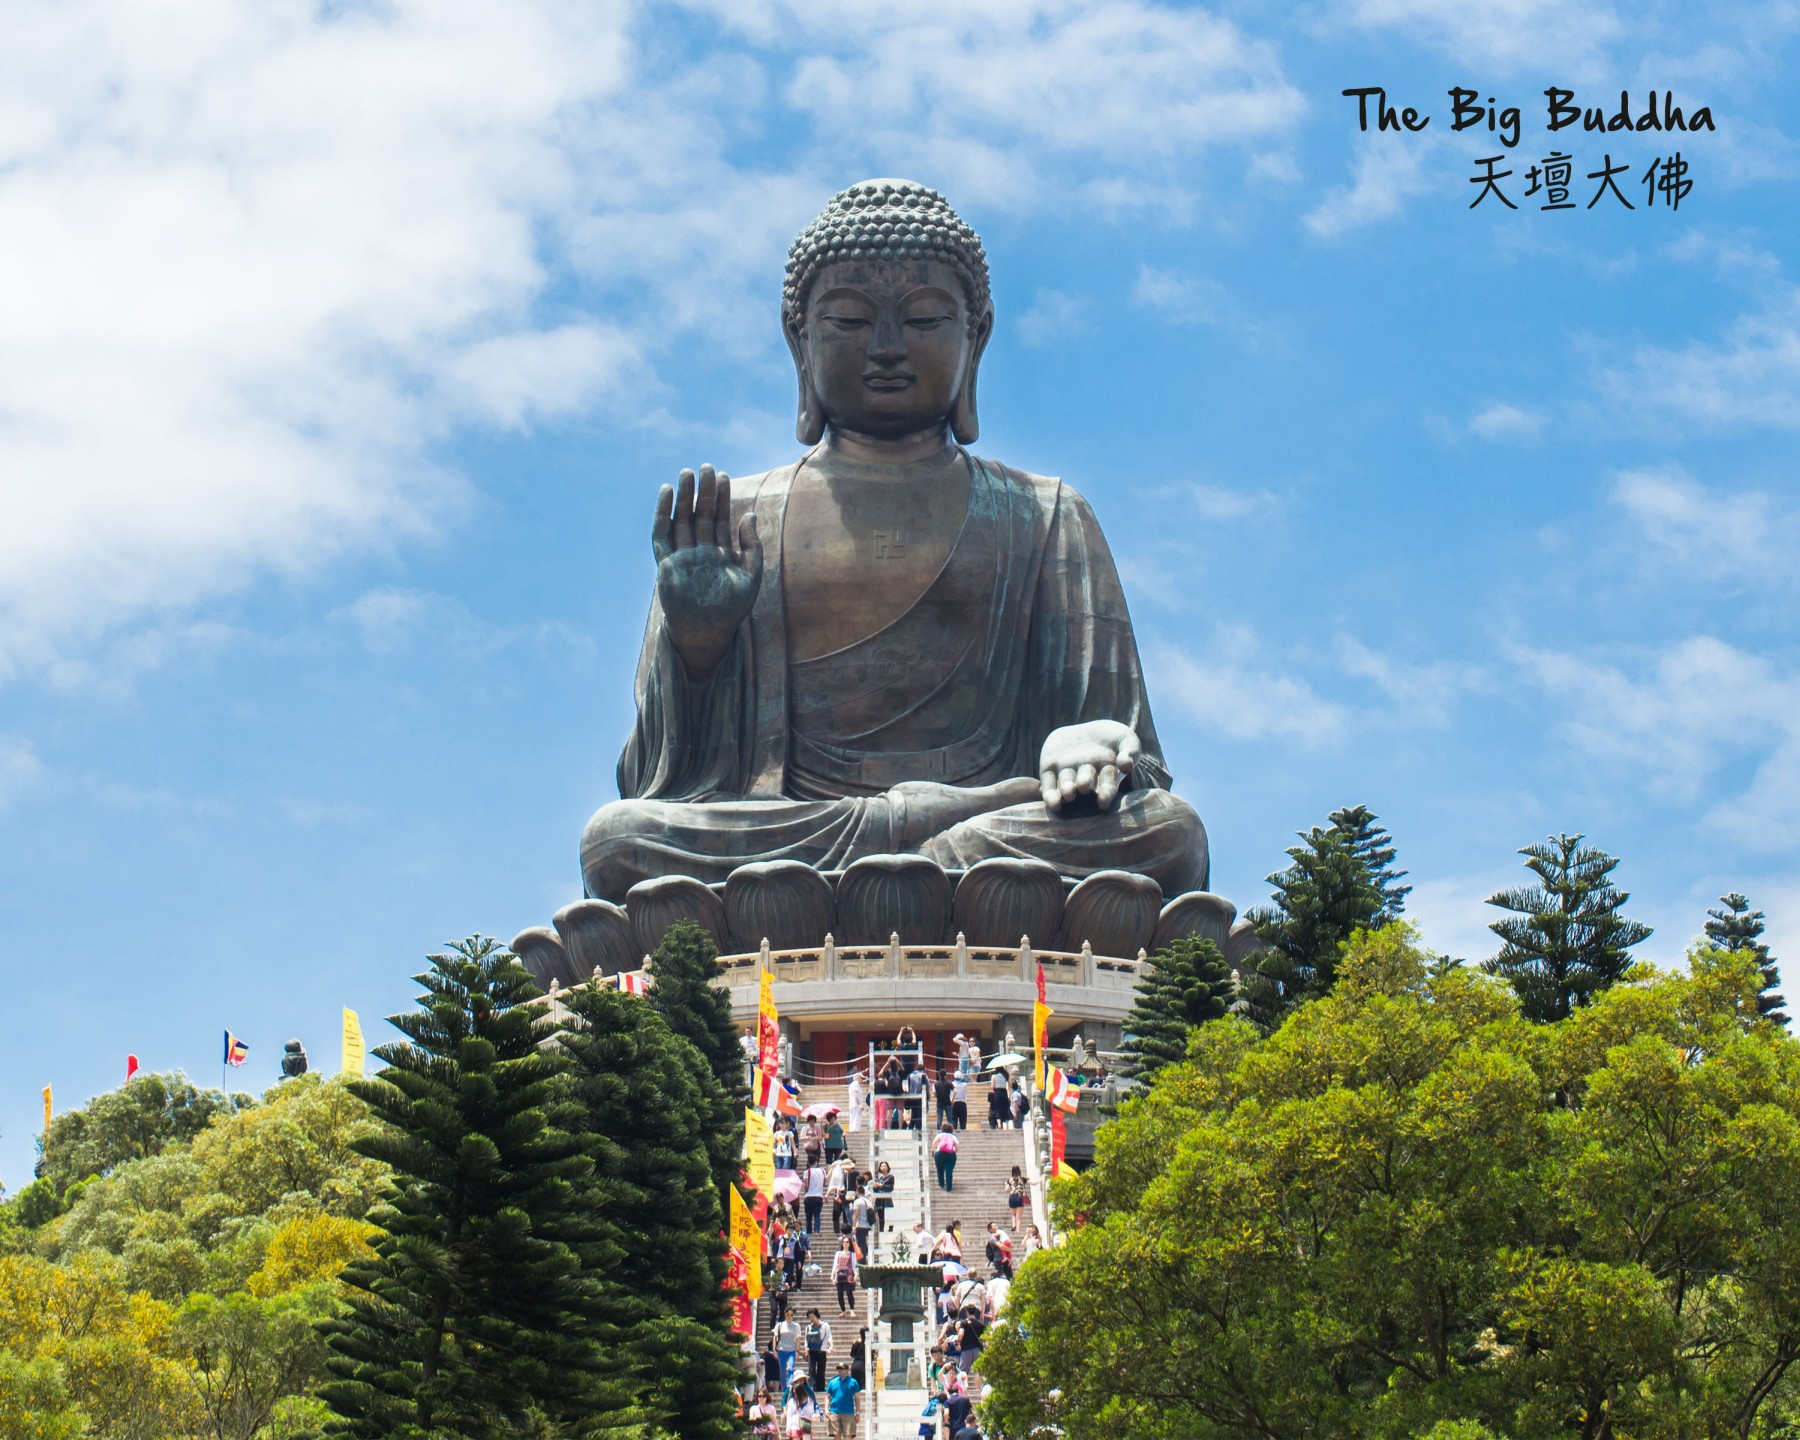 Giant Buddha, sumber foto Ngongping Official